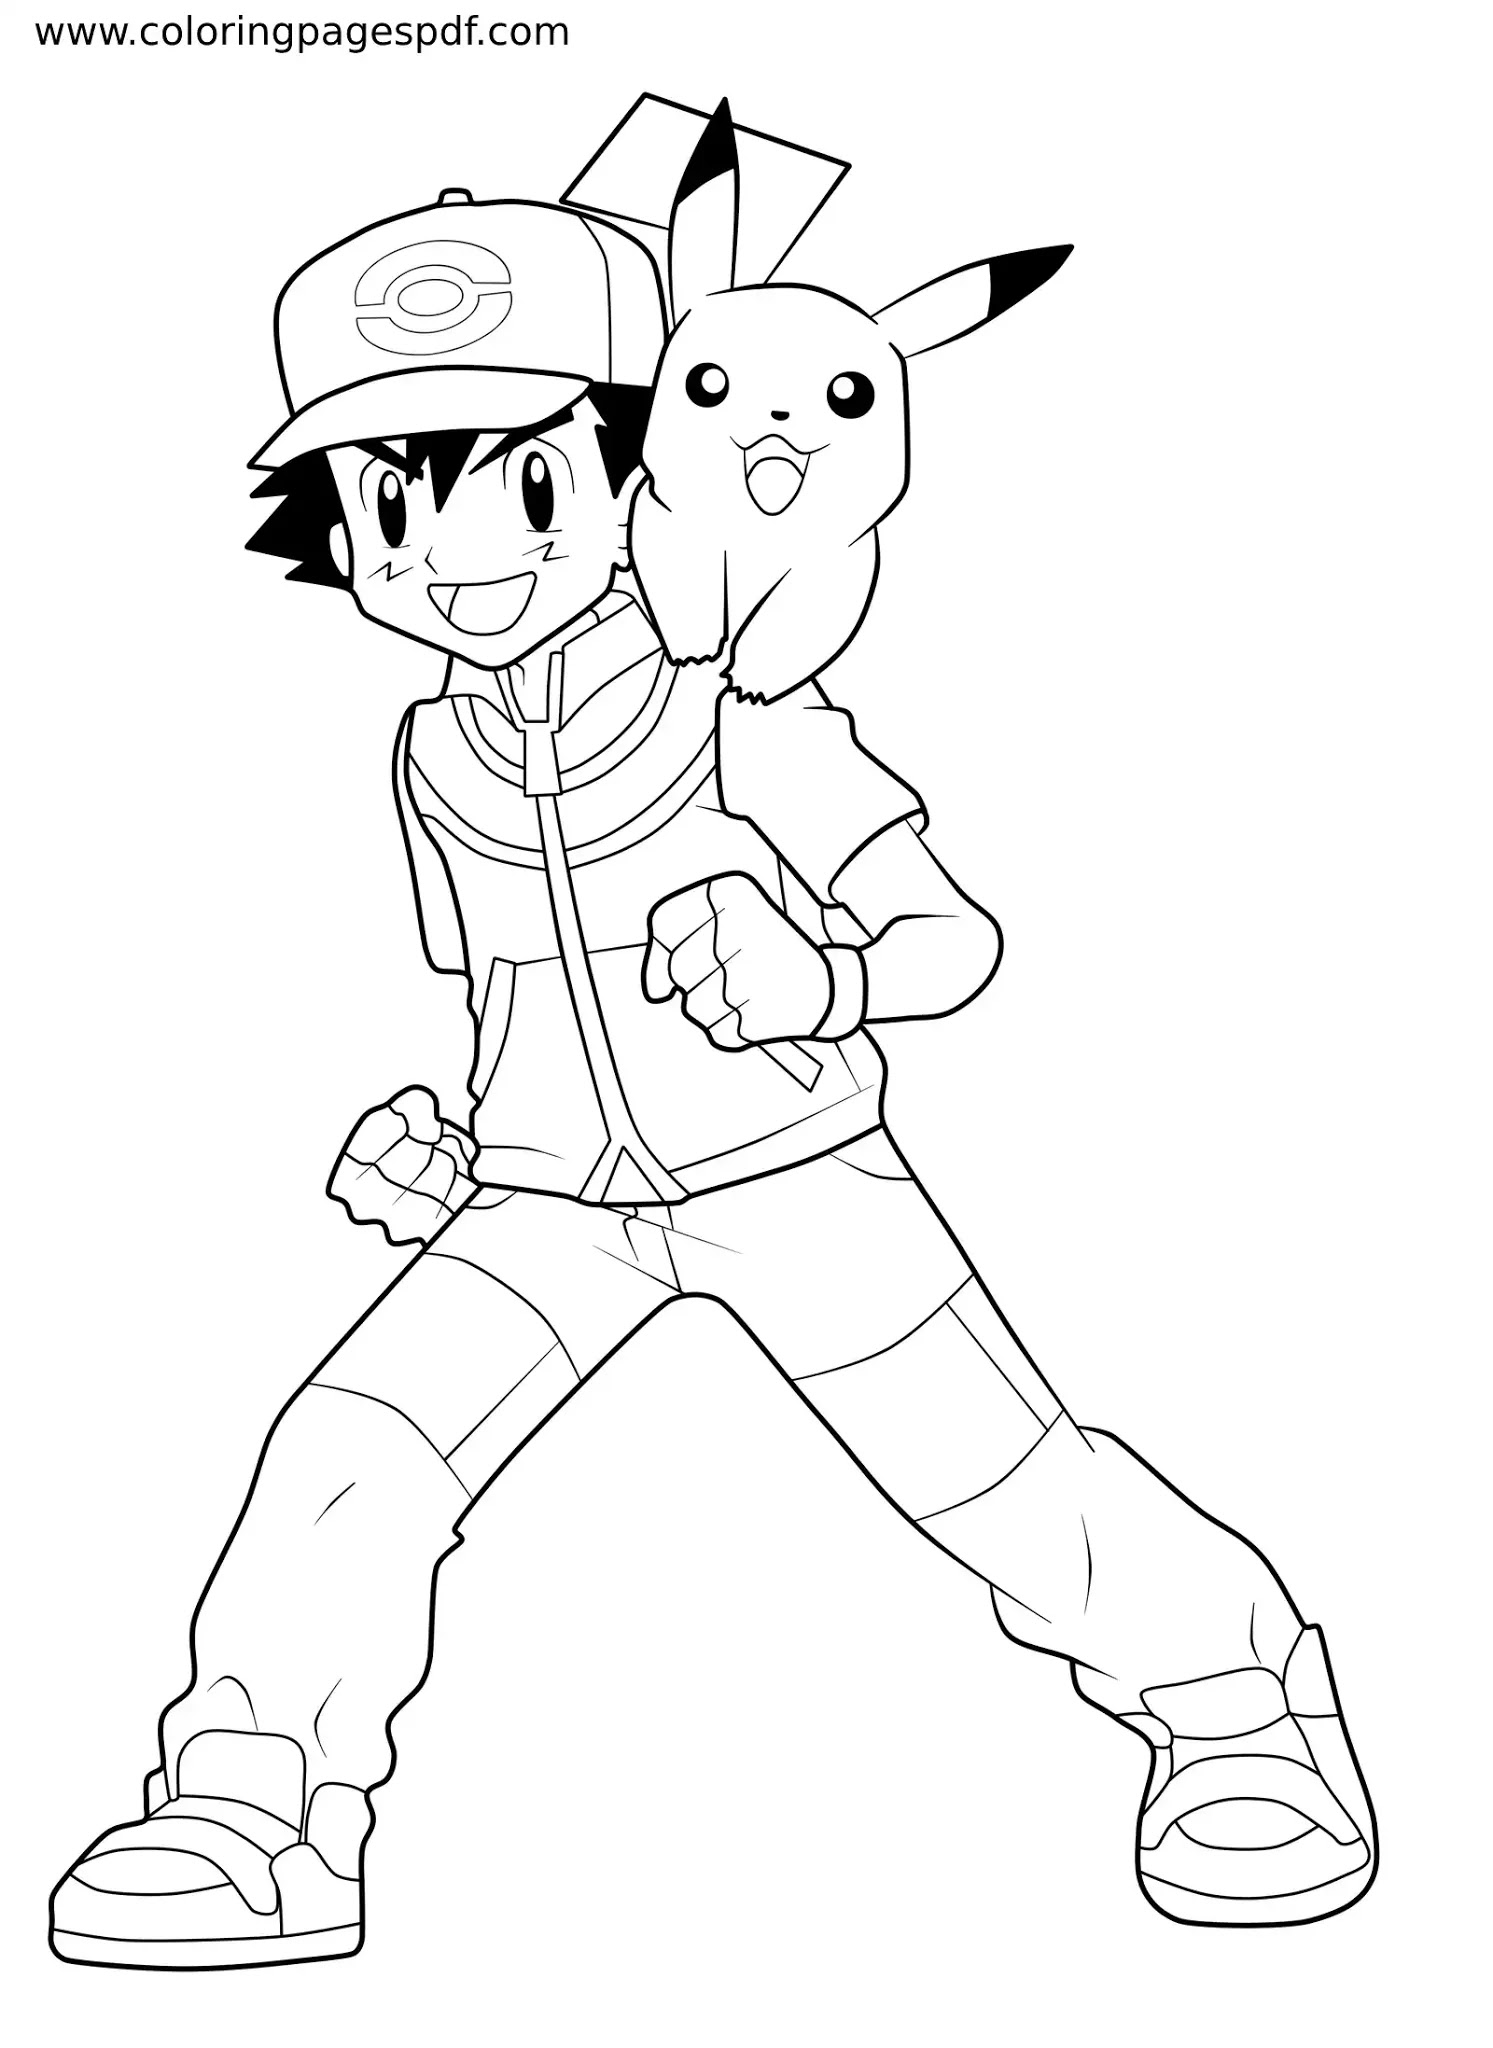 Coloring Page Of Ash and Pikachu